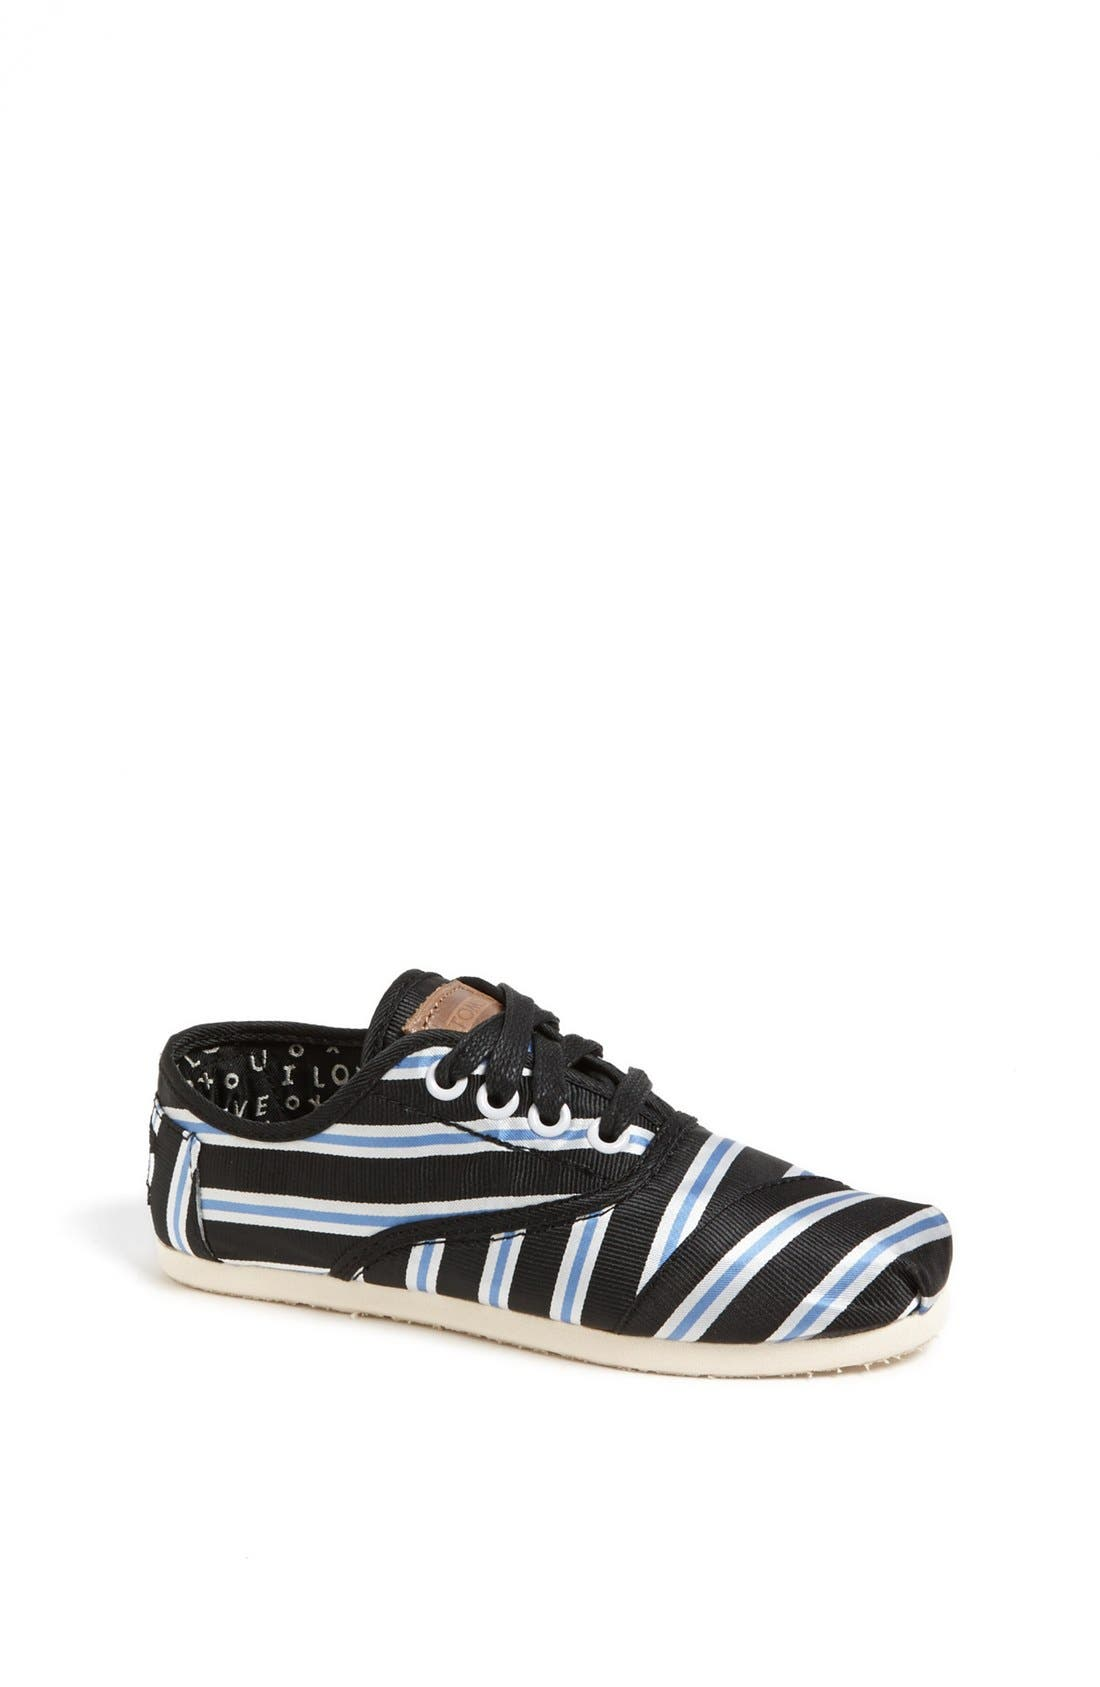 Alternate Image 1 Selected - TOMS 'Cordones - Tabitha Simmons' Slip-On (Toddler, Little Kid & Big Kid) (Limited Edition)